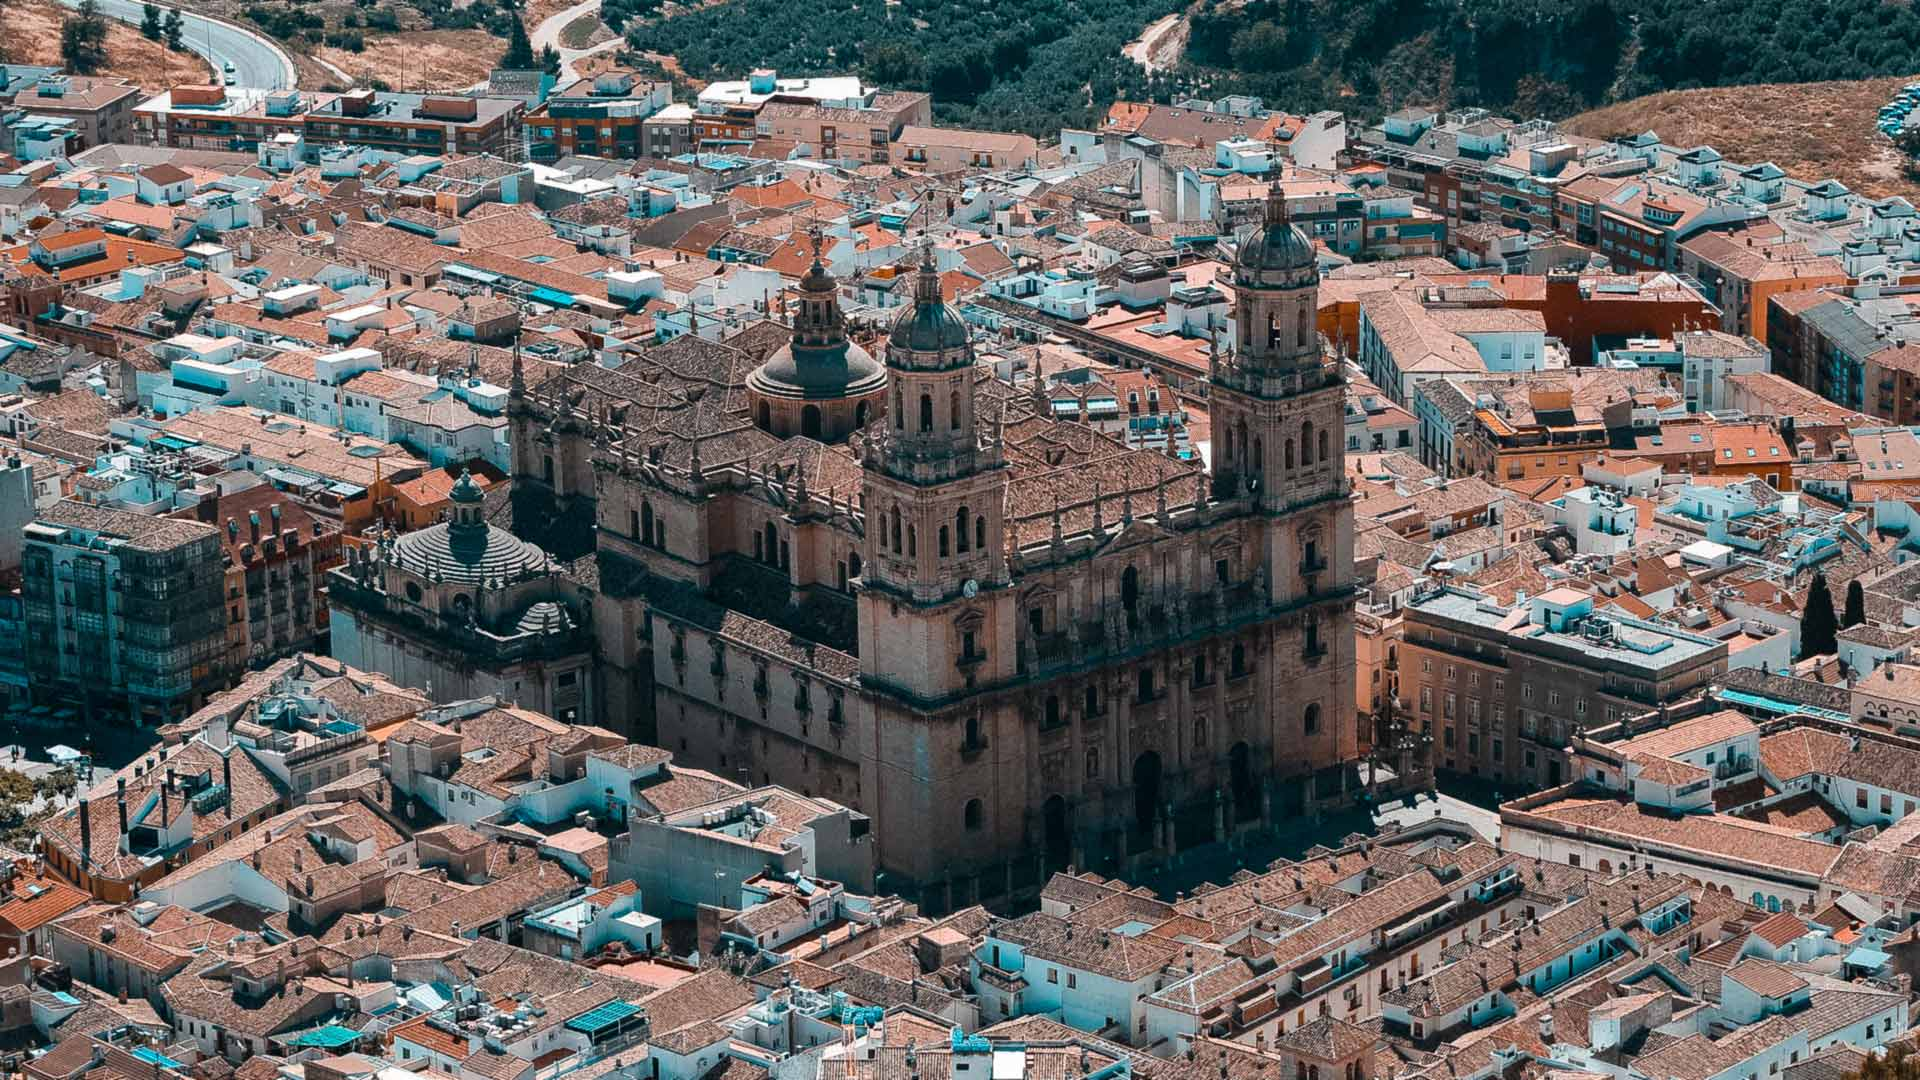 How to find accommodation in Jaén